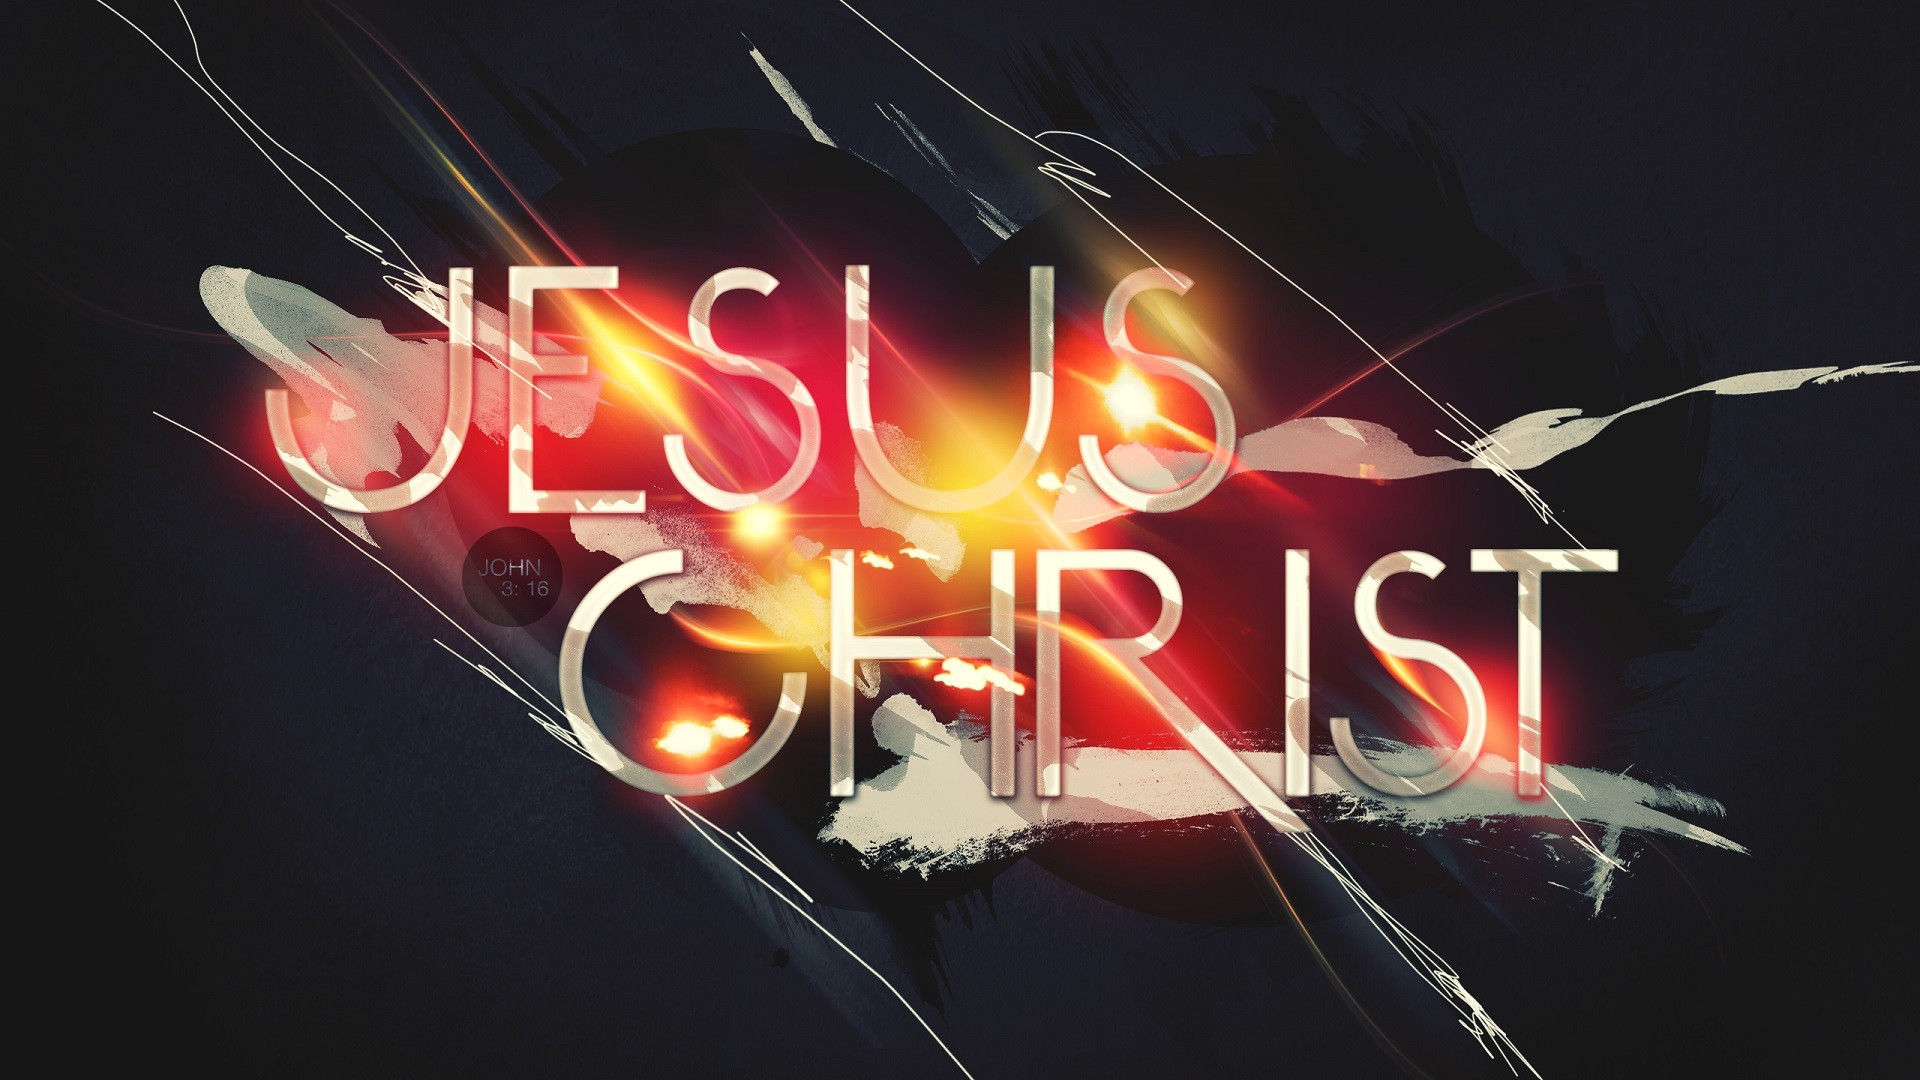 Cool Jesus Wallpapers (54+ images)